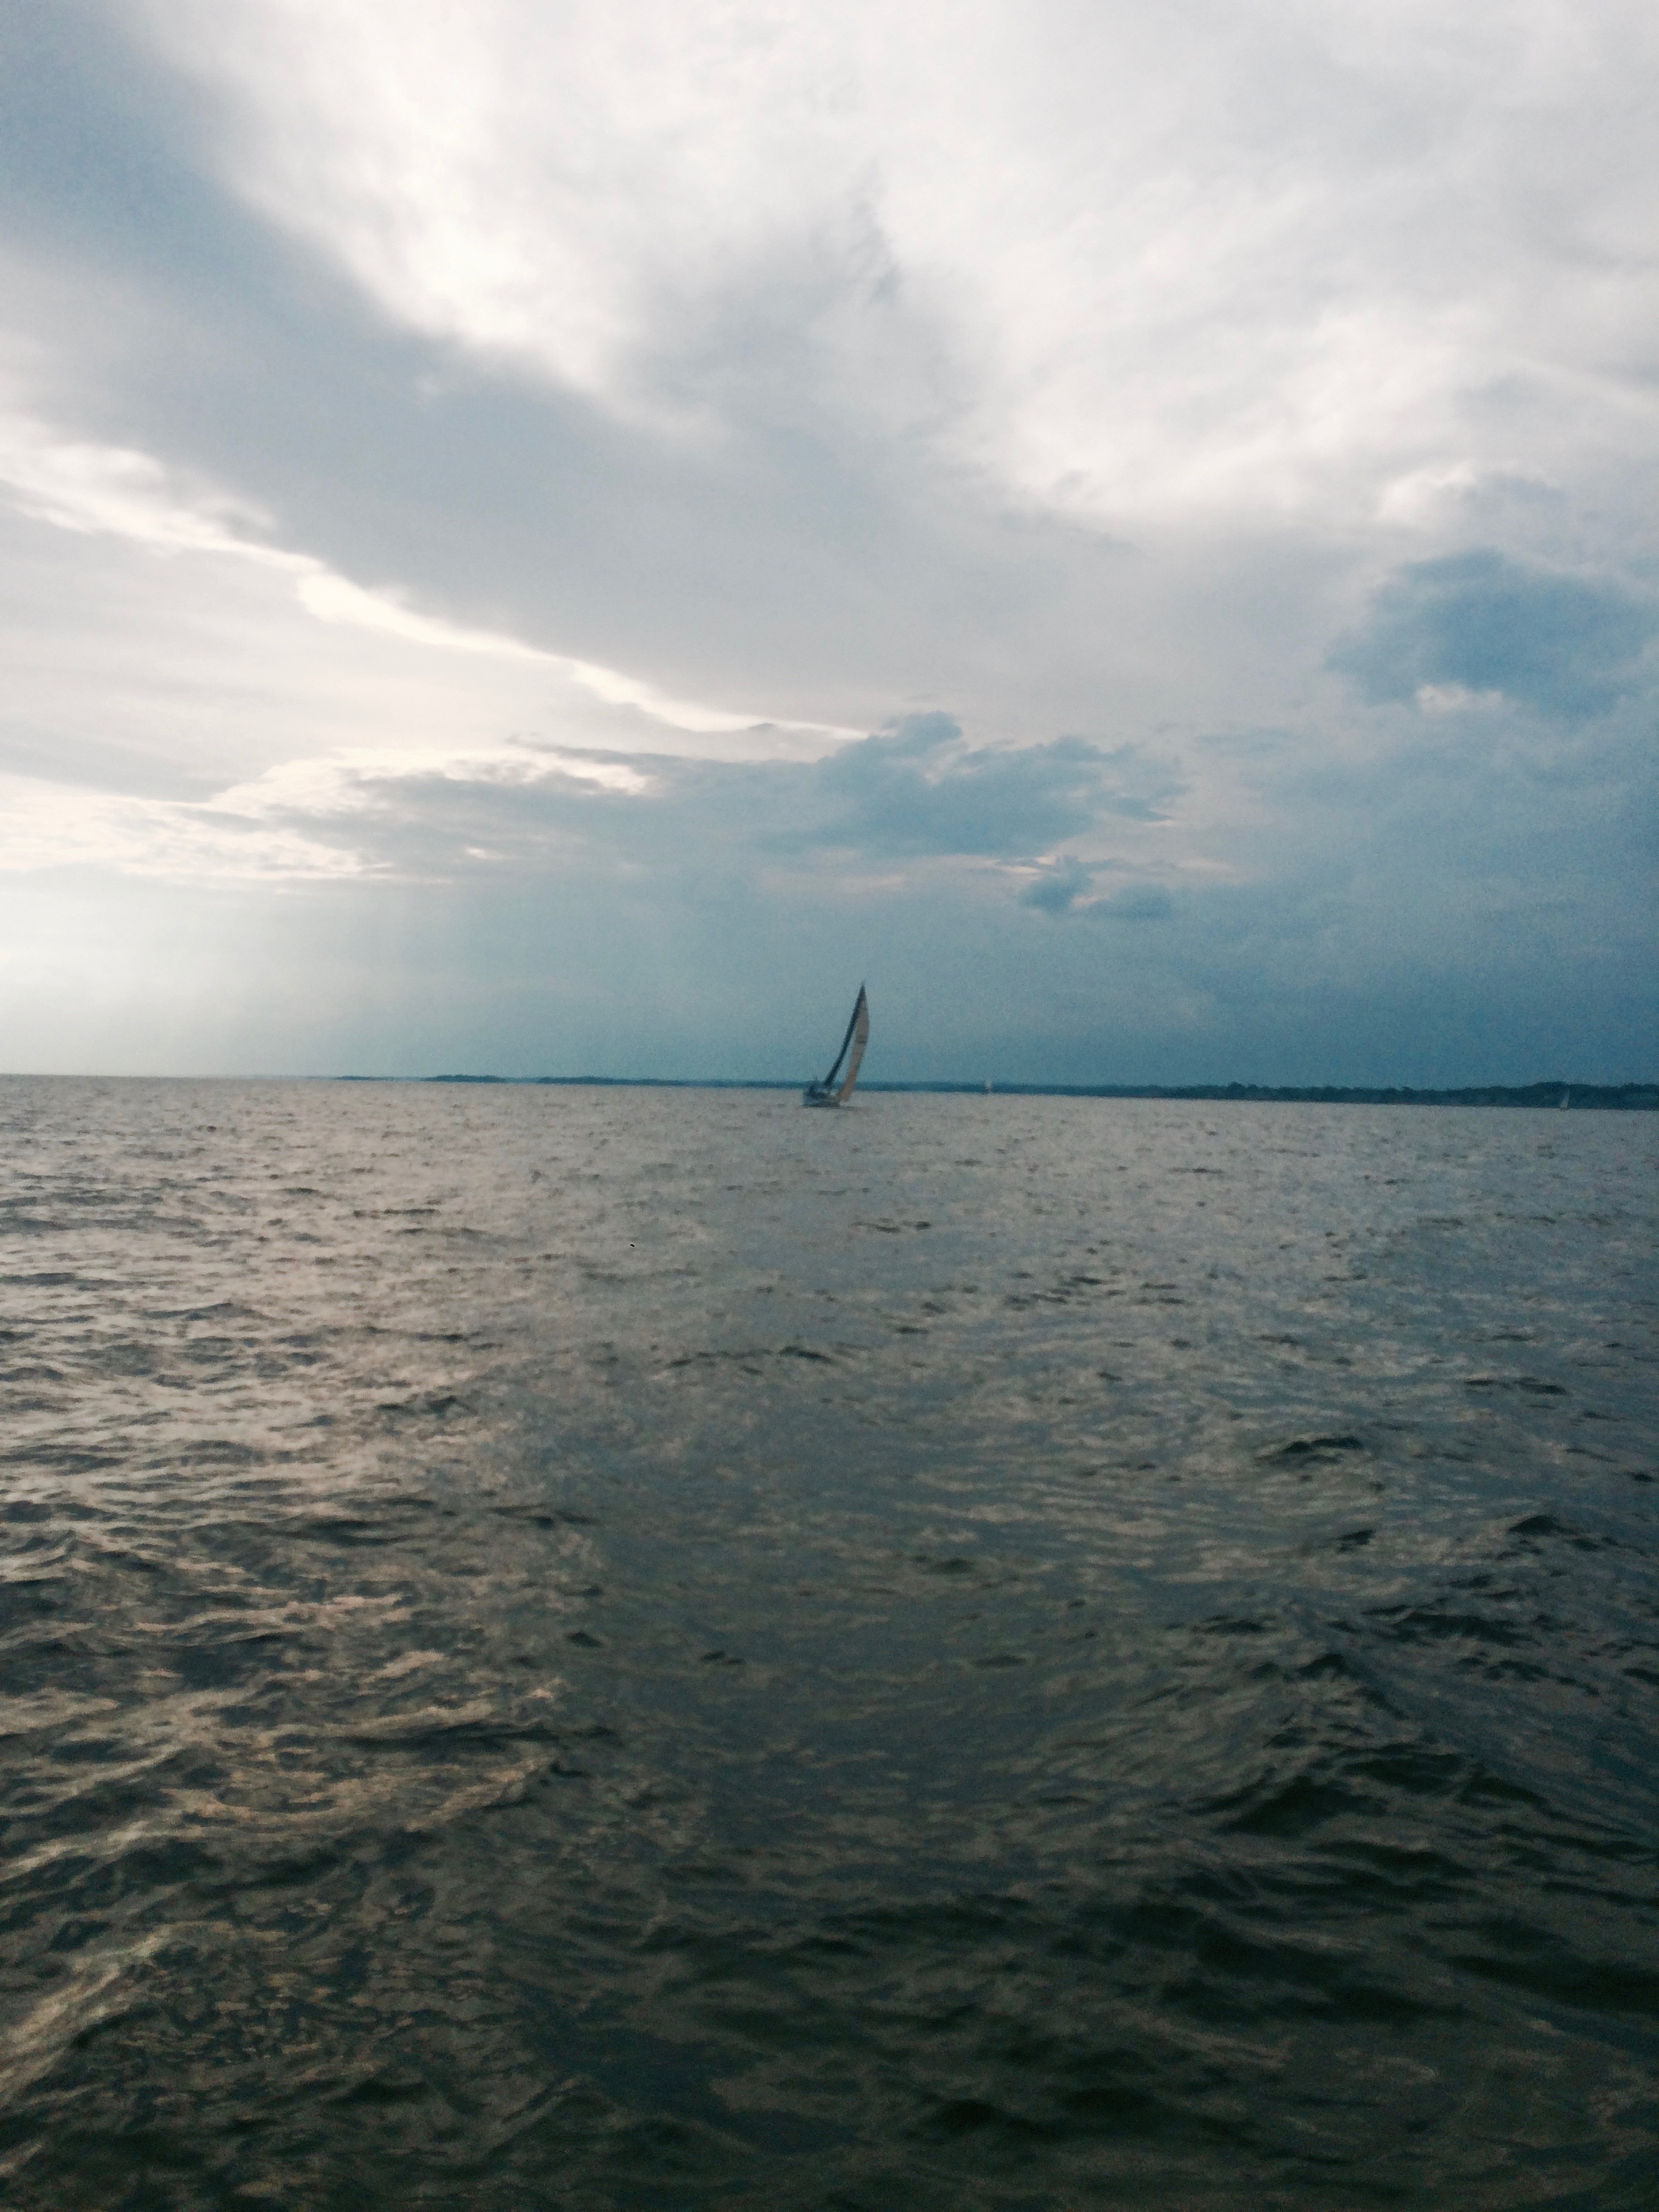 Sailing & Business: Lessons from a Novice